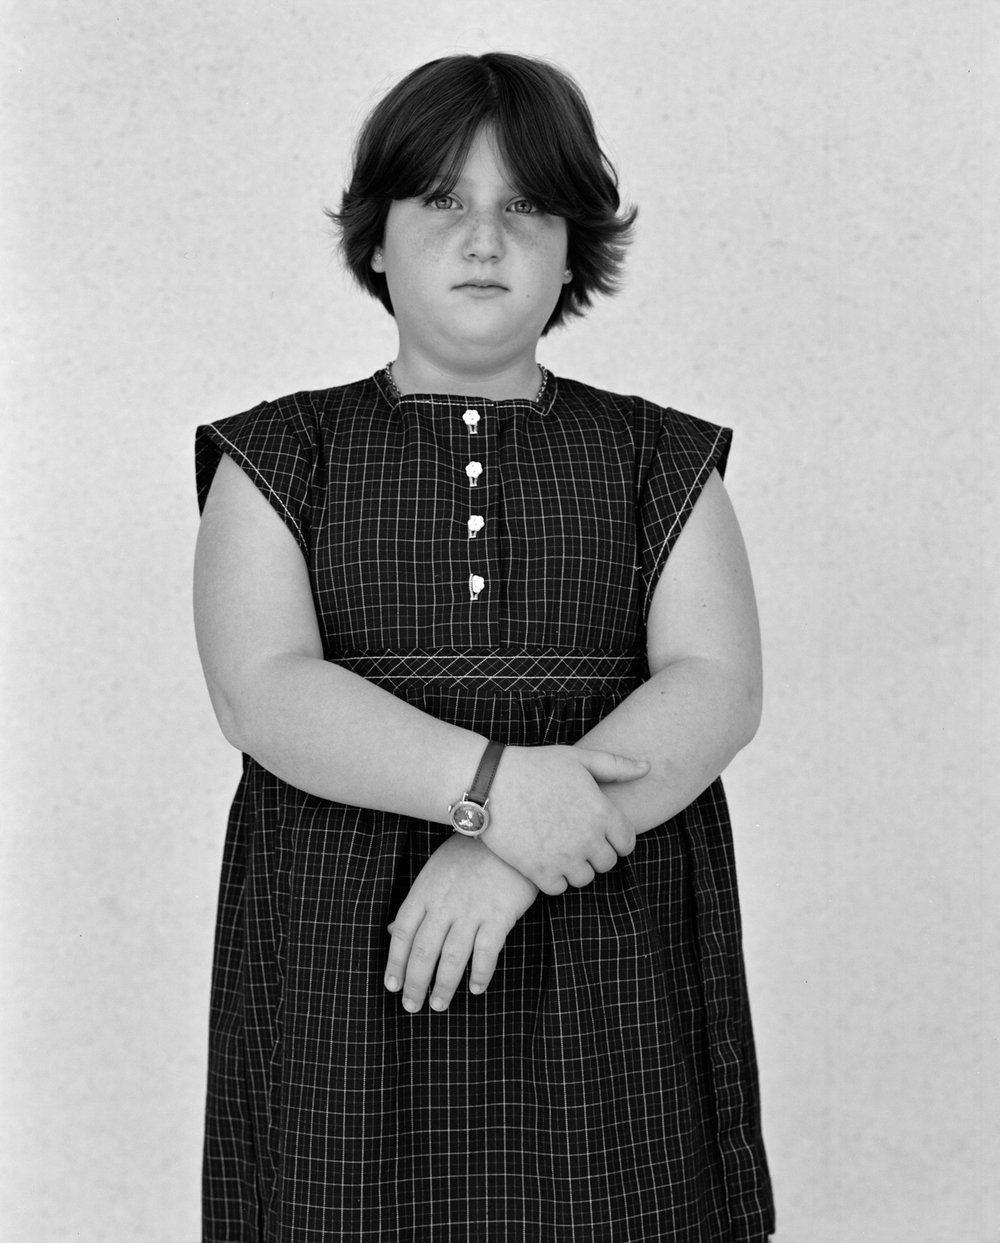 Girl at Temple Beth Israel, Houston, TX, 1975